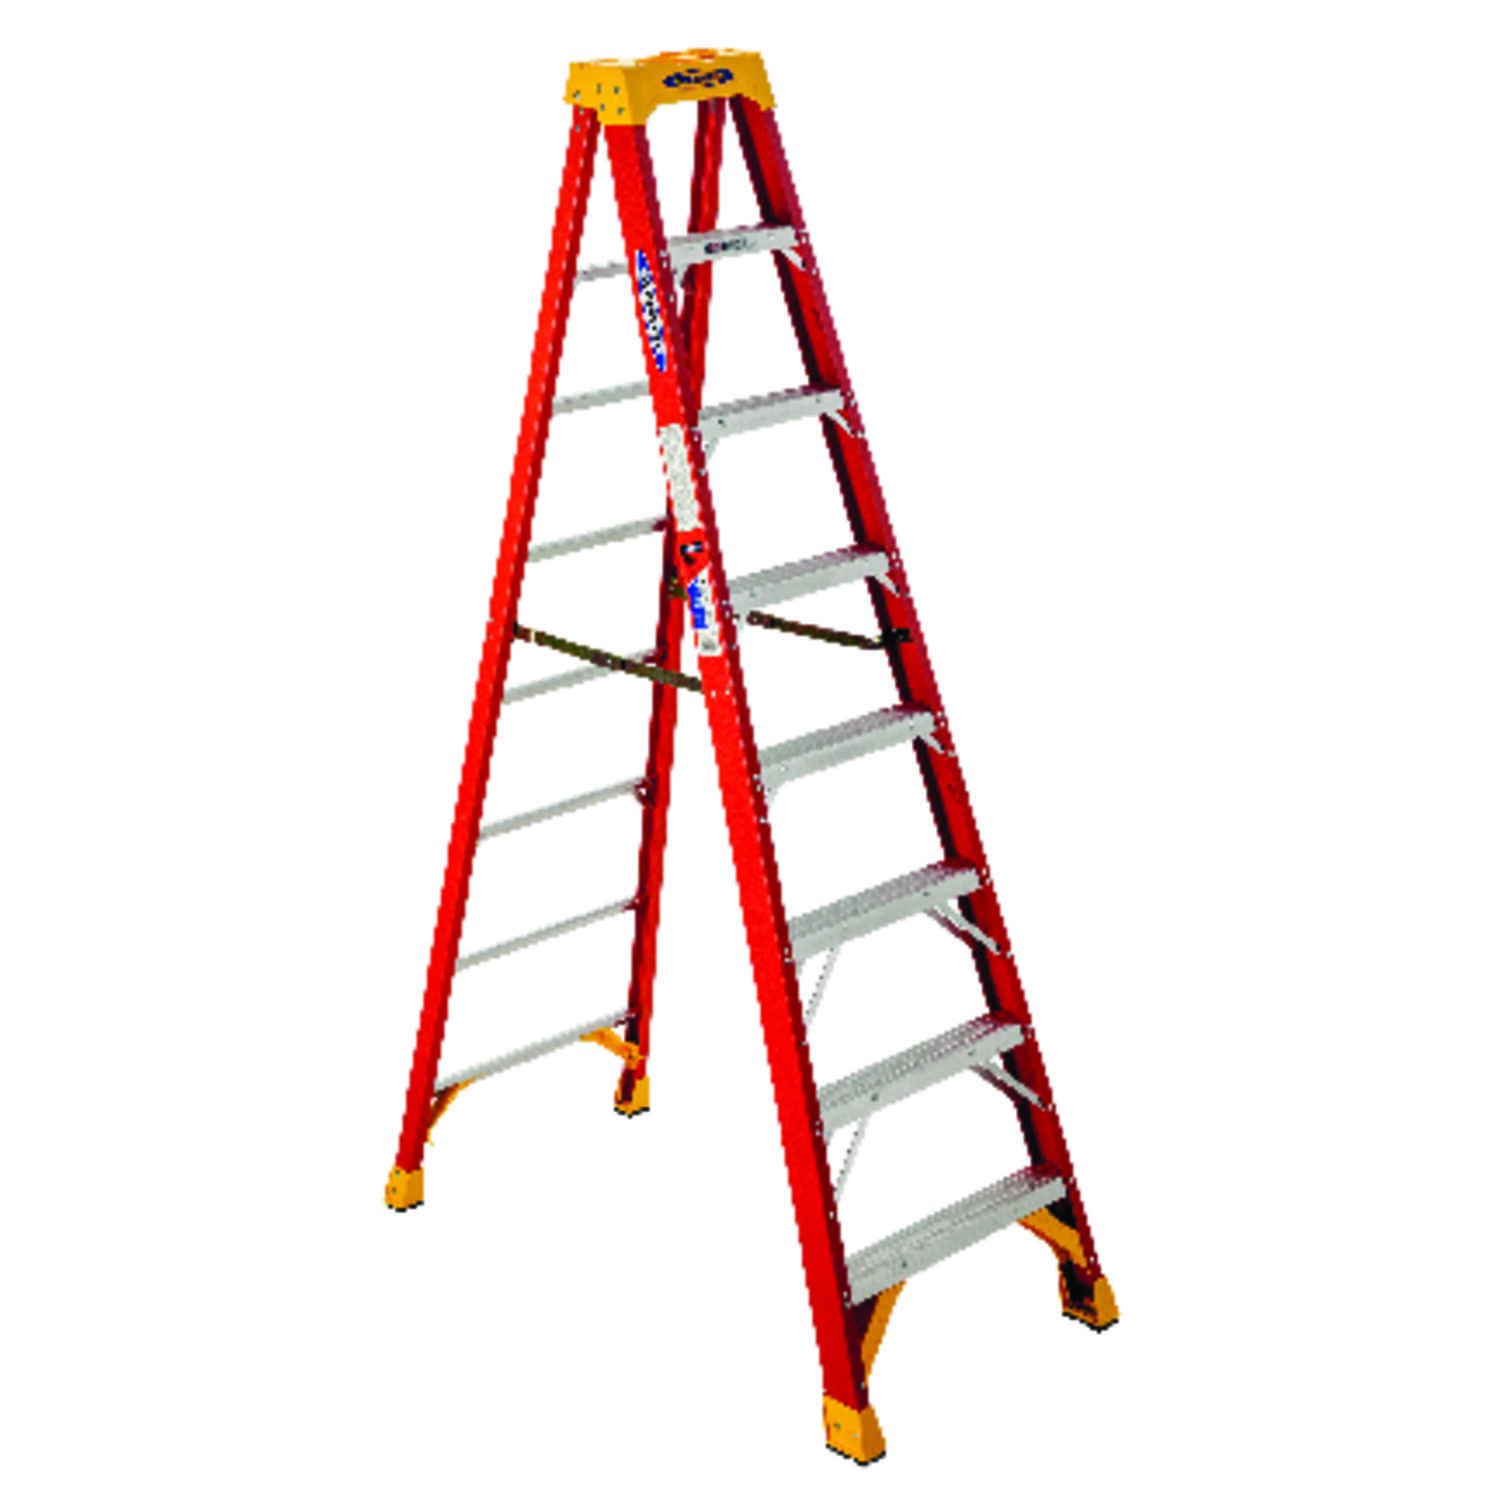 Werner  8 ft. H x 26.88 in. W Fiberglass  Step Ladder  300 lb. capacity Type IA